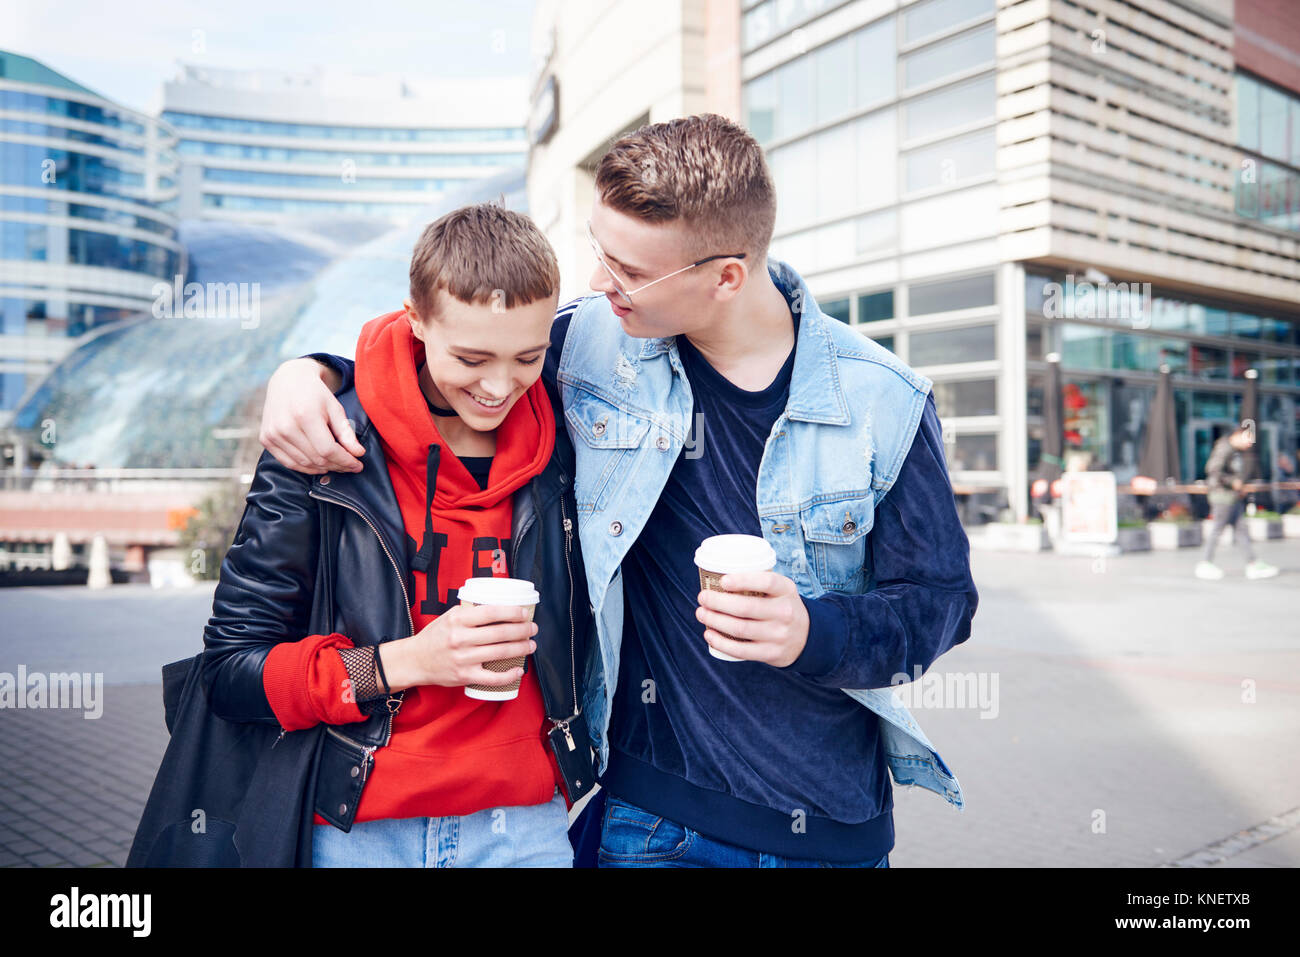 Romantic young couple with takeaway coffee walking together in city - Stock Image